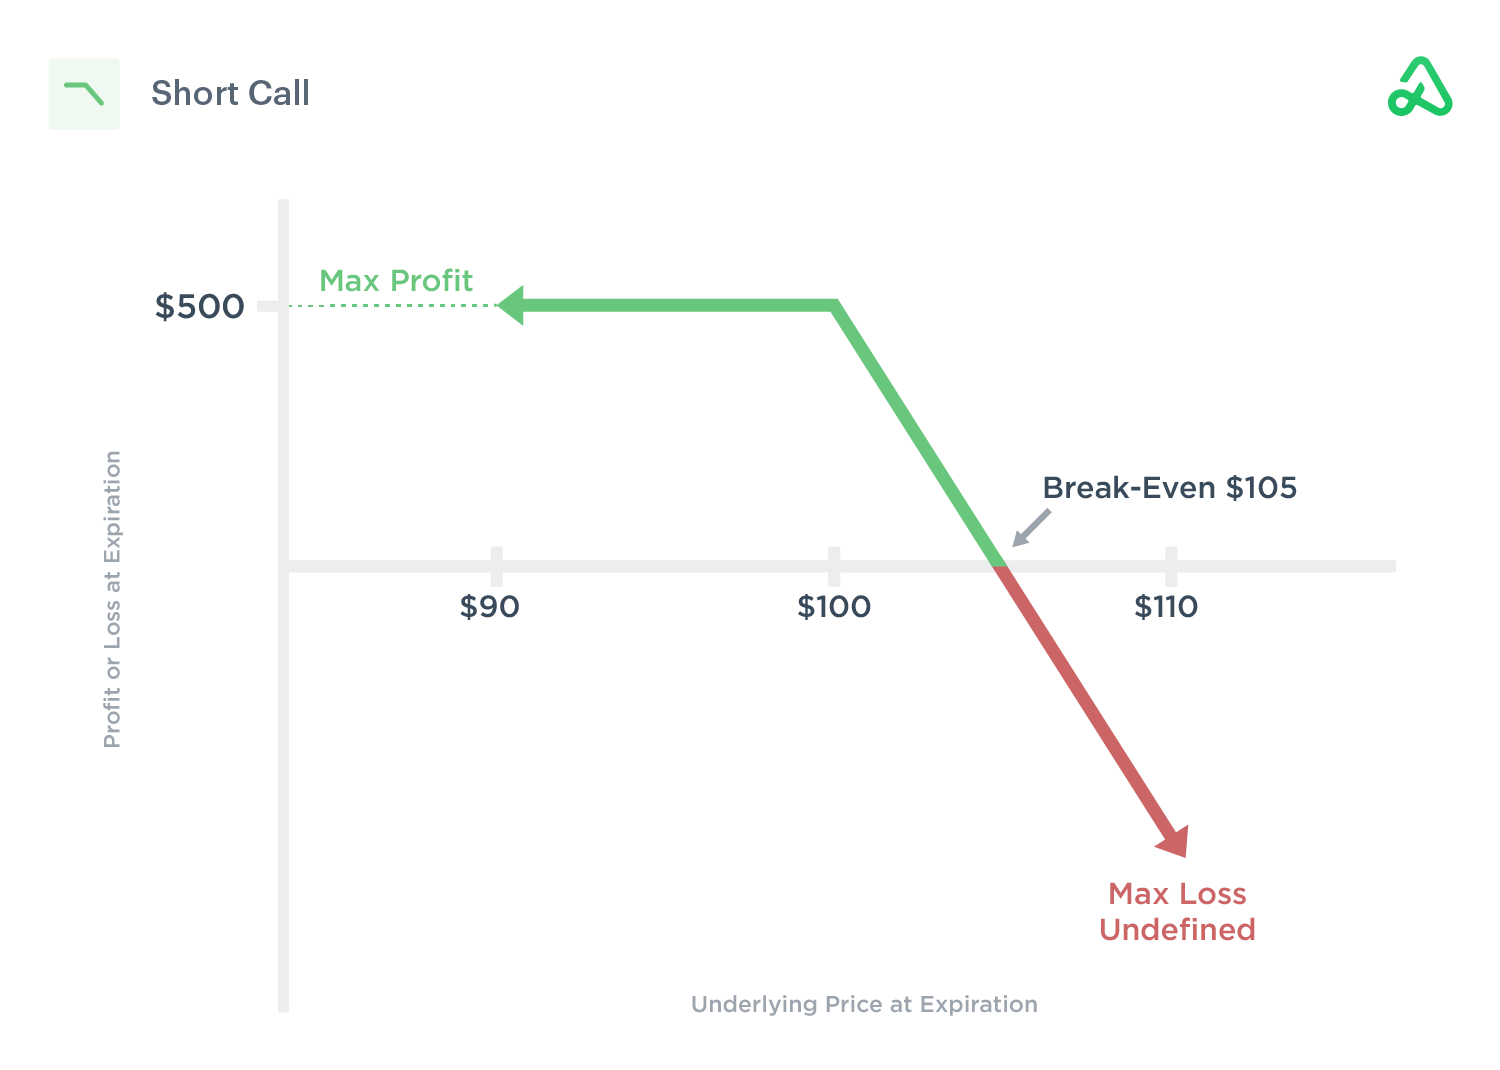 Short call payoff diagram showing max profit, max loss, and break-even point